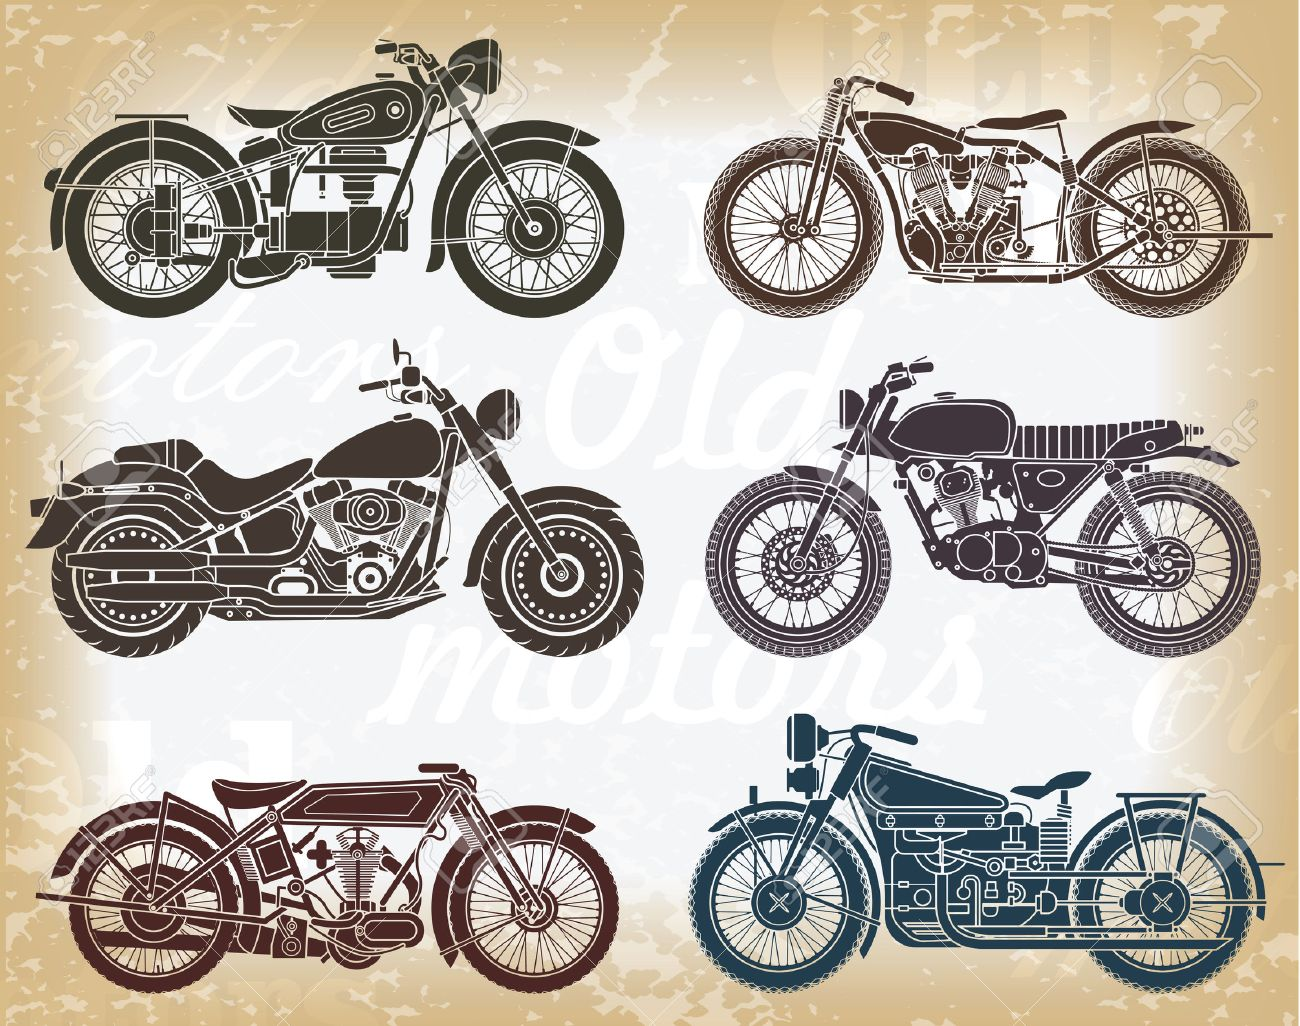 Vector Set Of Old Classic Motorcycle Royalty Free Cliparts, Vectors ...